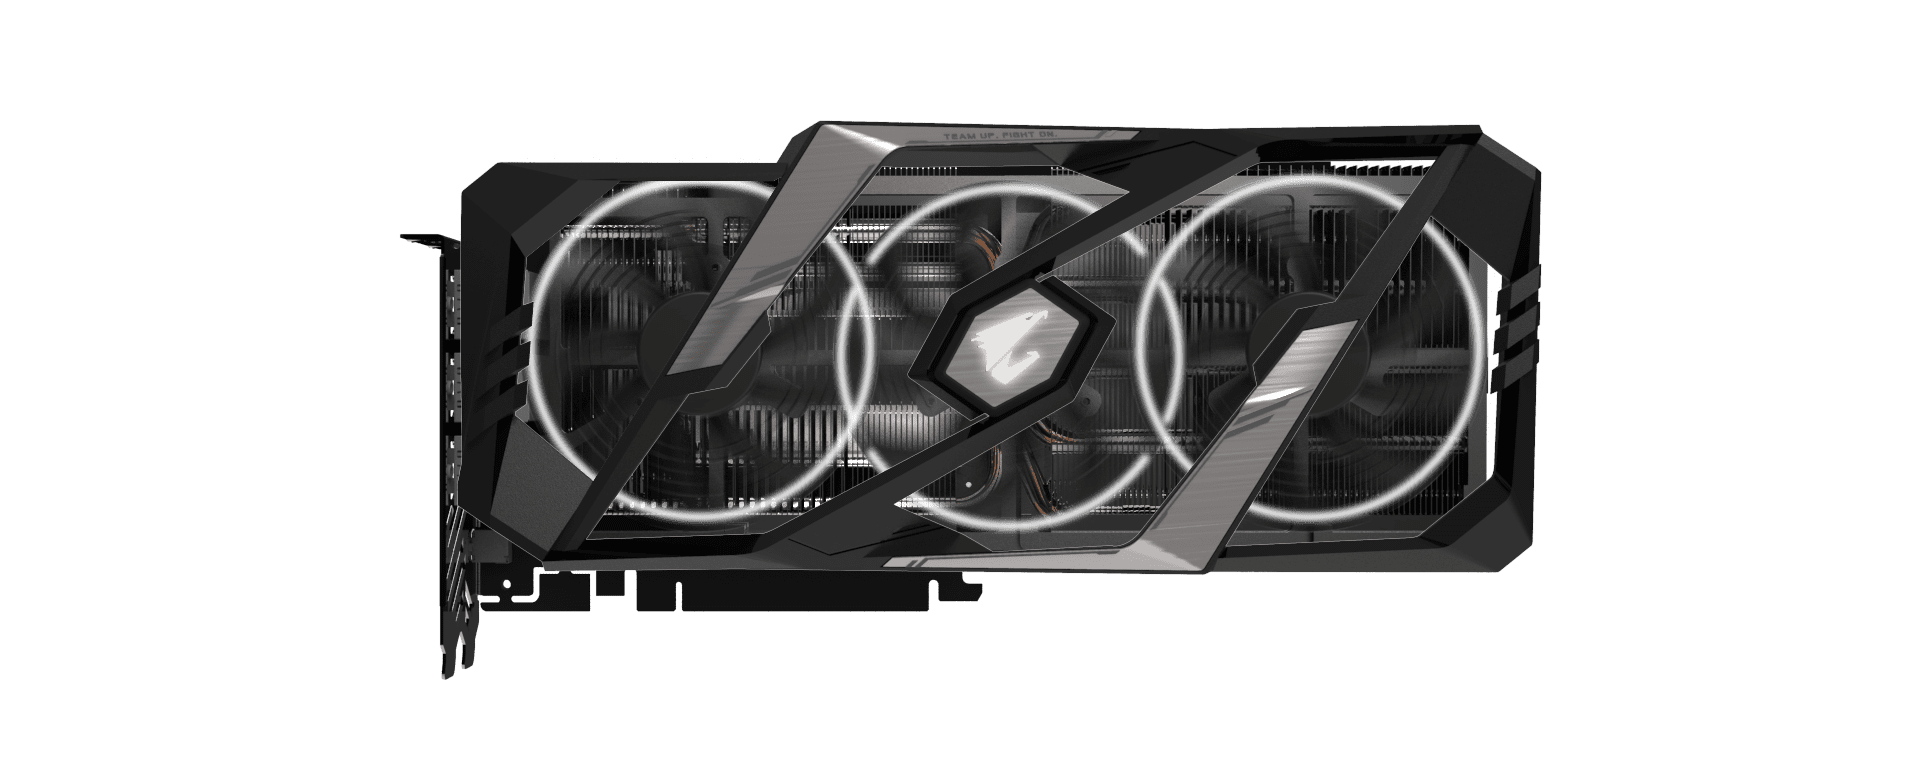 AORUS GeForce RTX™ 2070 8G | Graphics Card - GIGABYTE Global